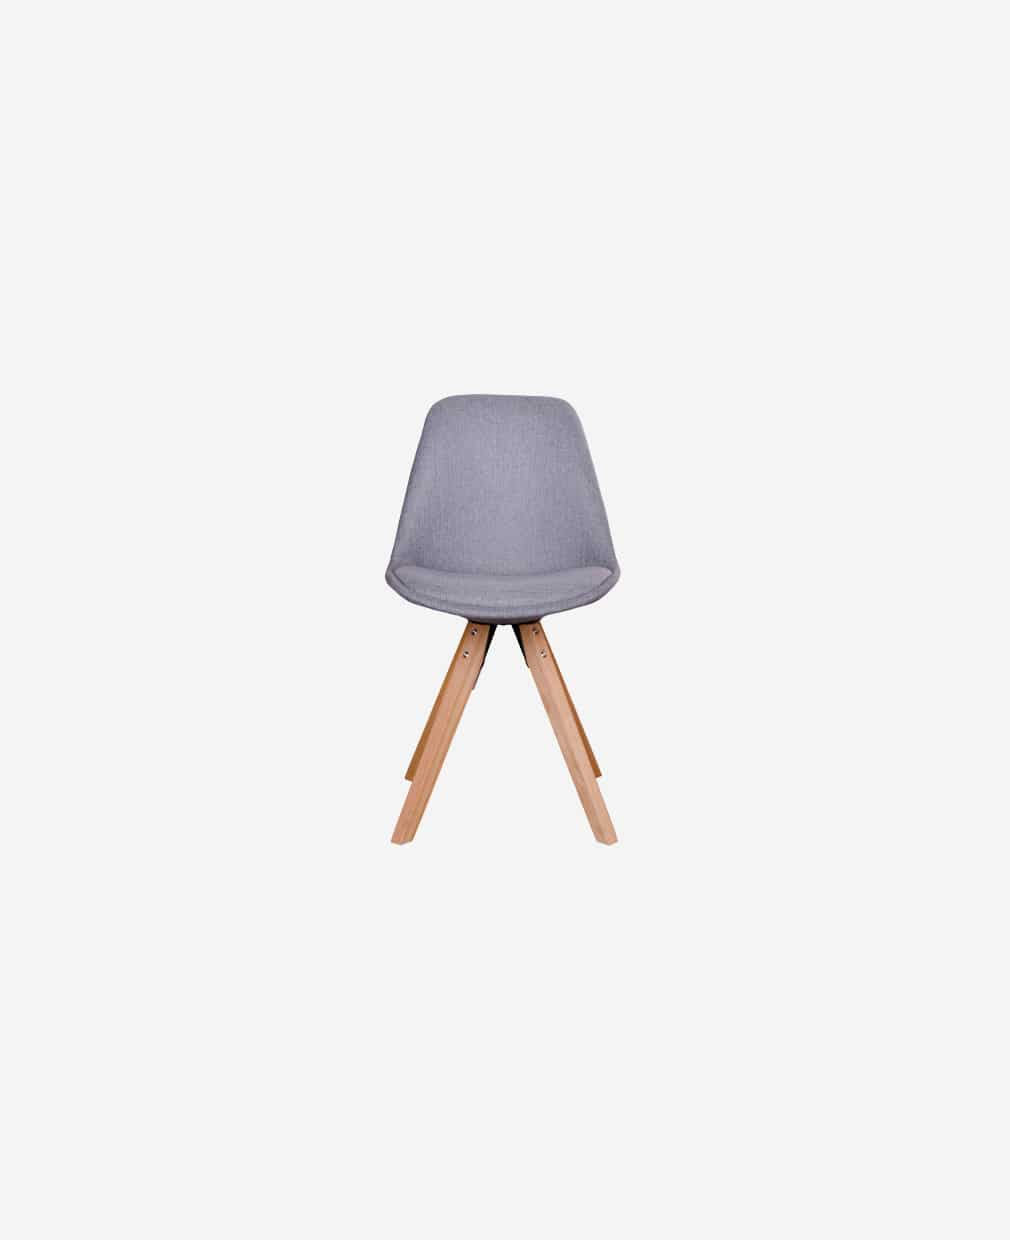 Chaise gris clair scandinave